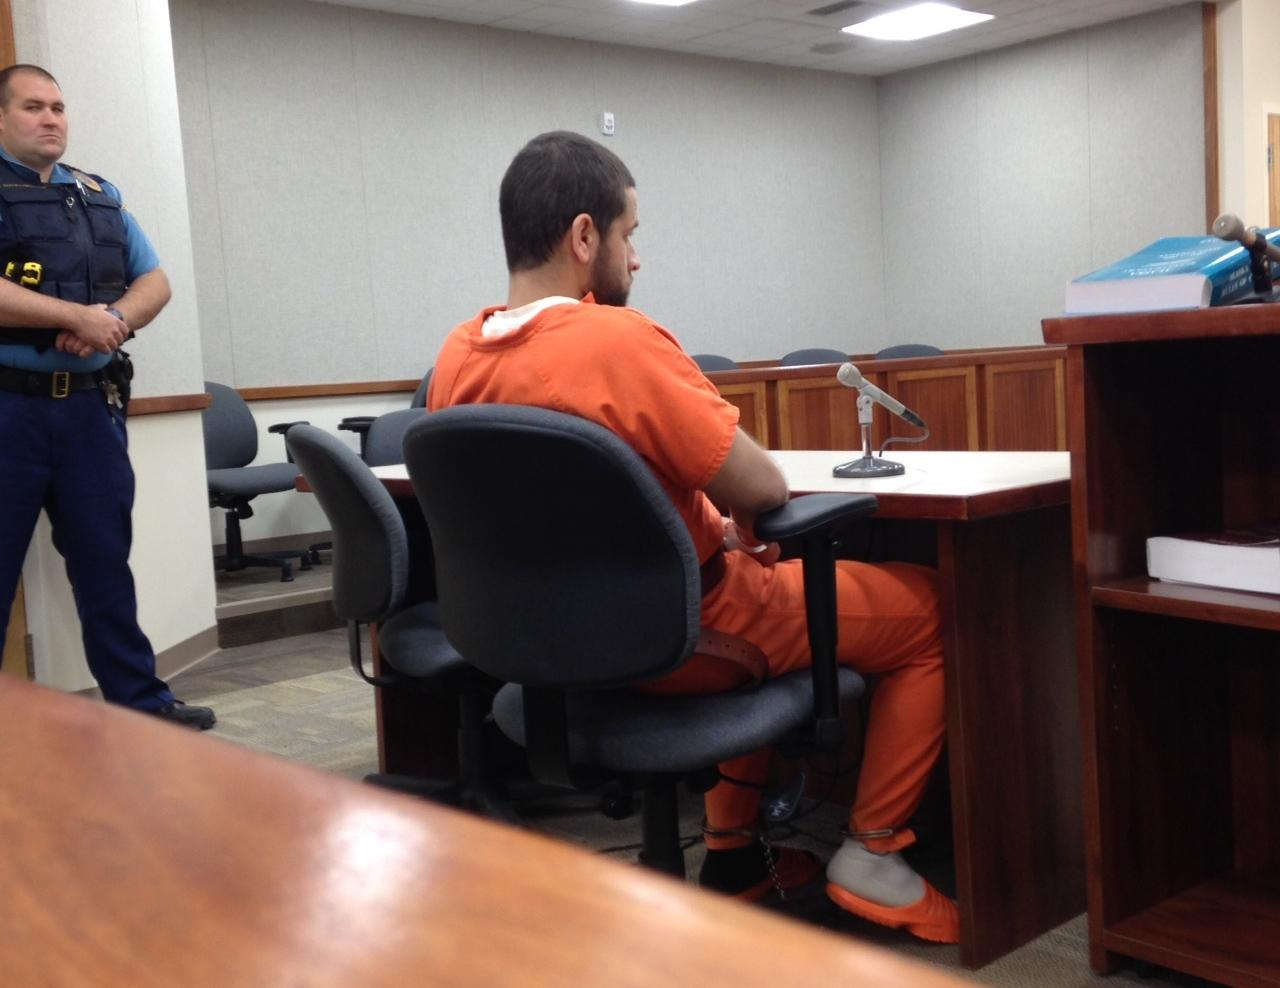 Christian Young, 24, was arraigned for felony probation violations Wednesday in Dillingham. (Photo by KDLG)